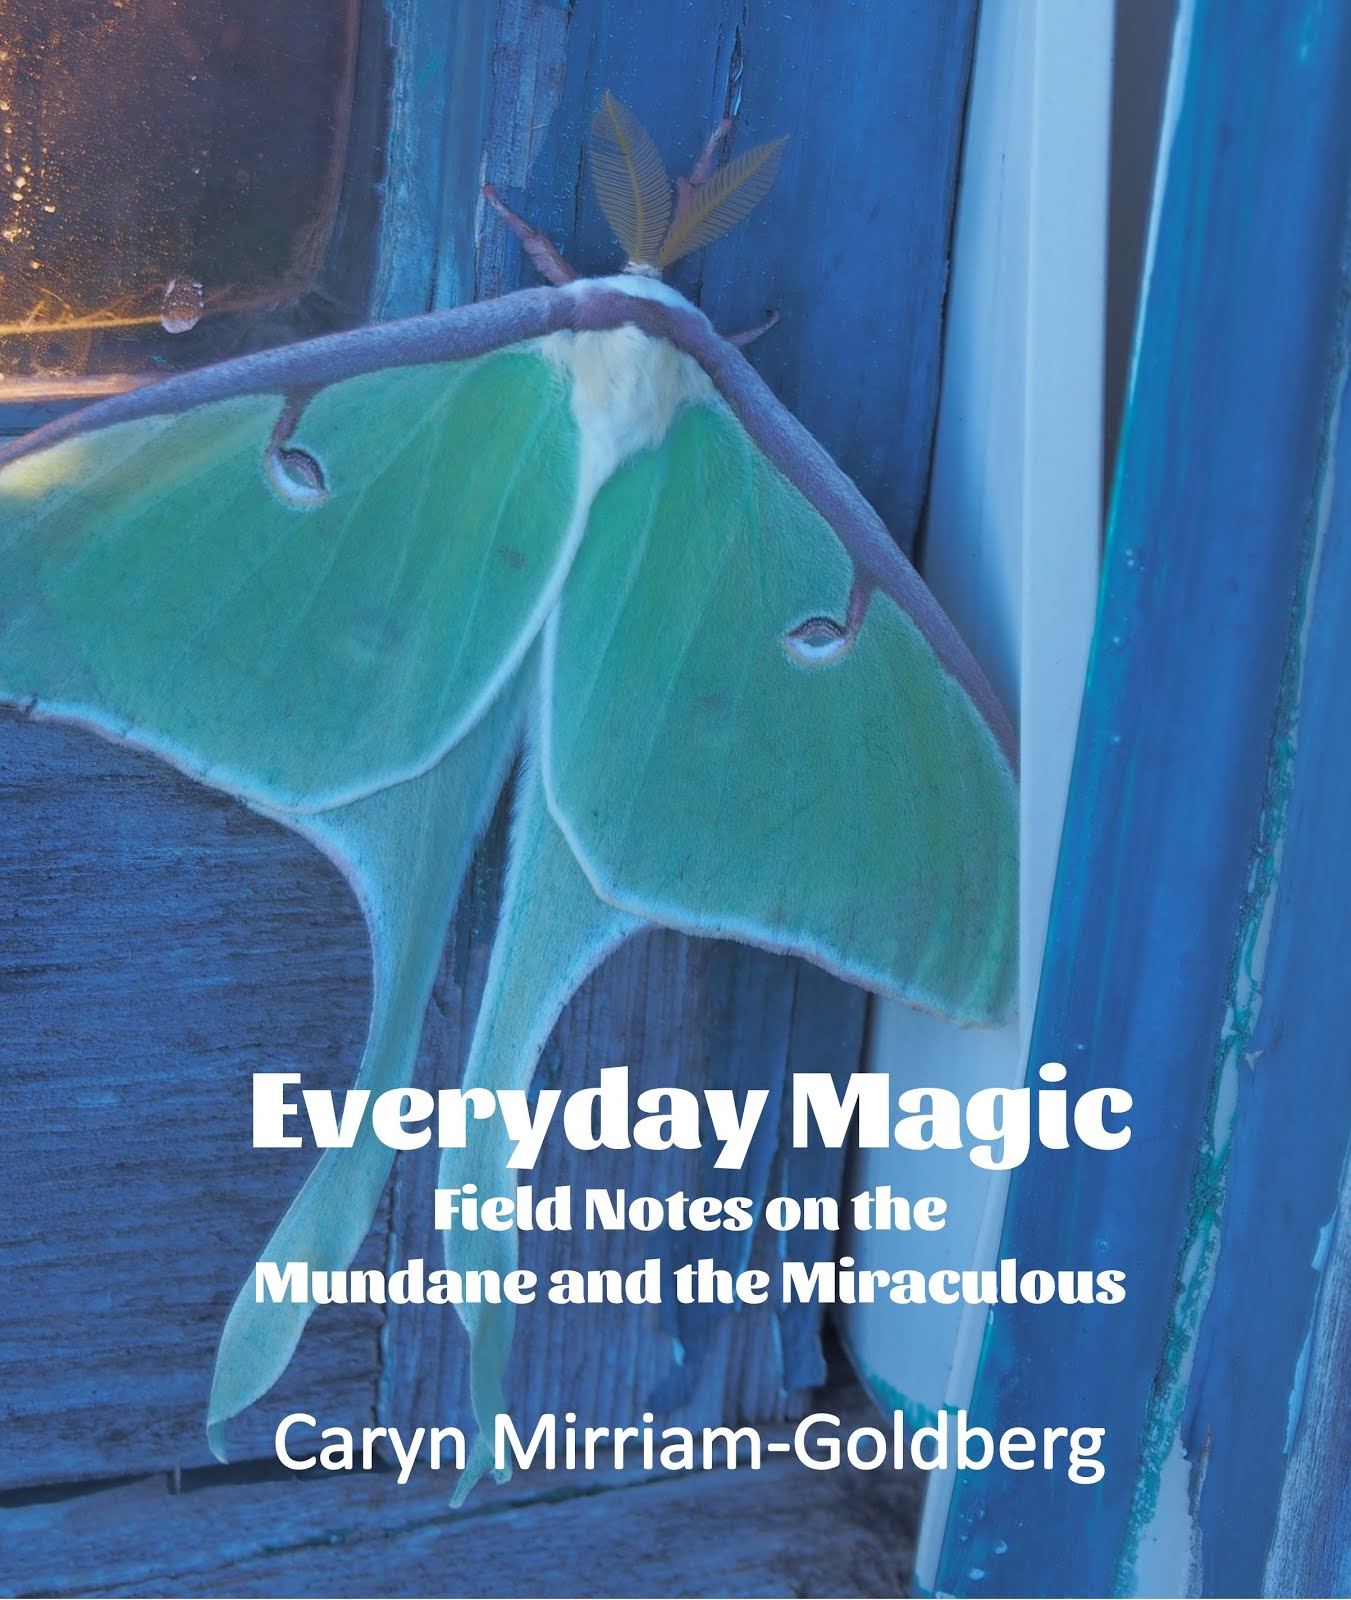 Everyday Magic